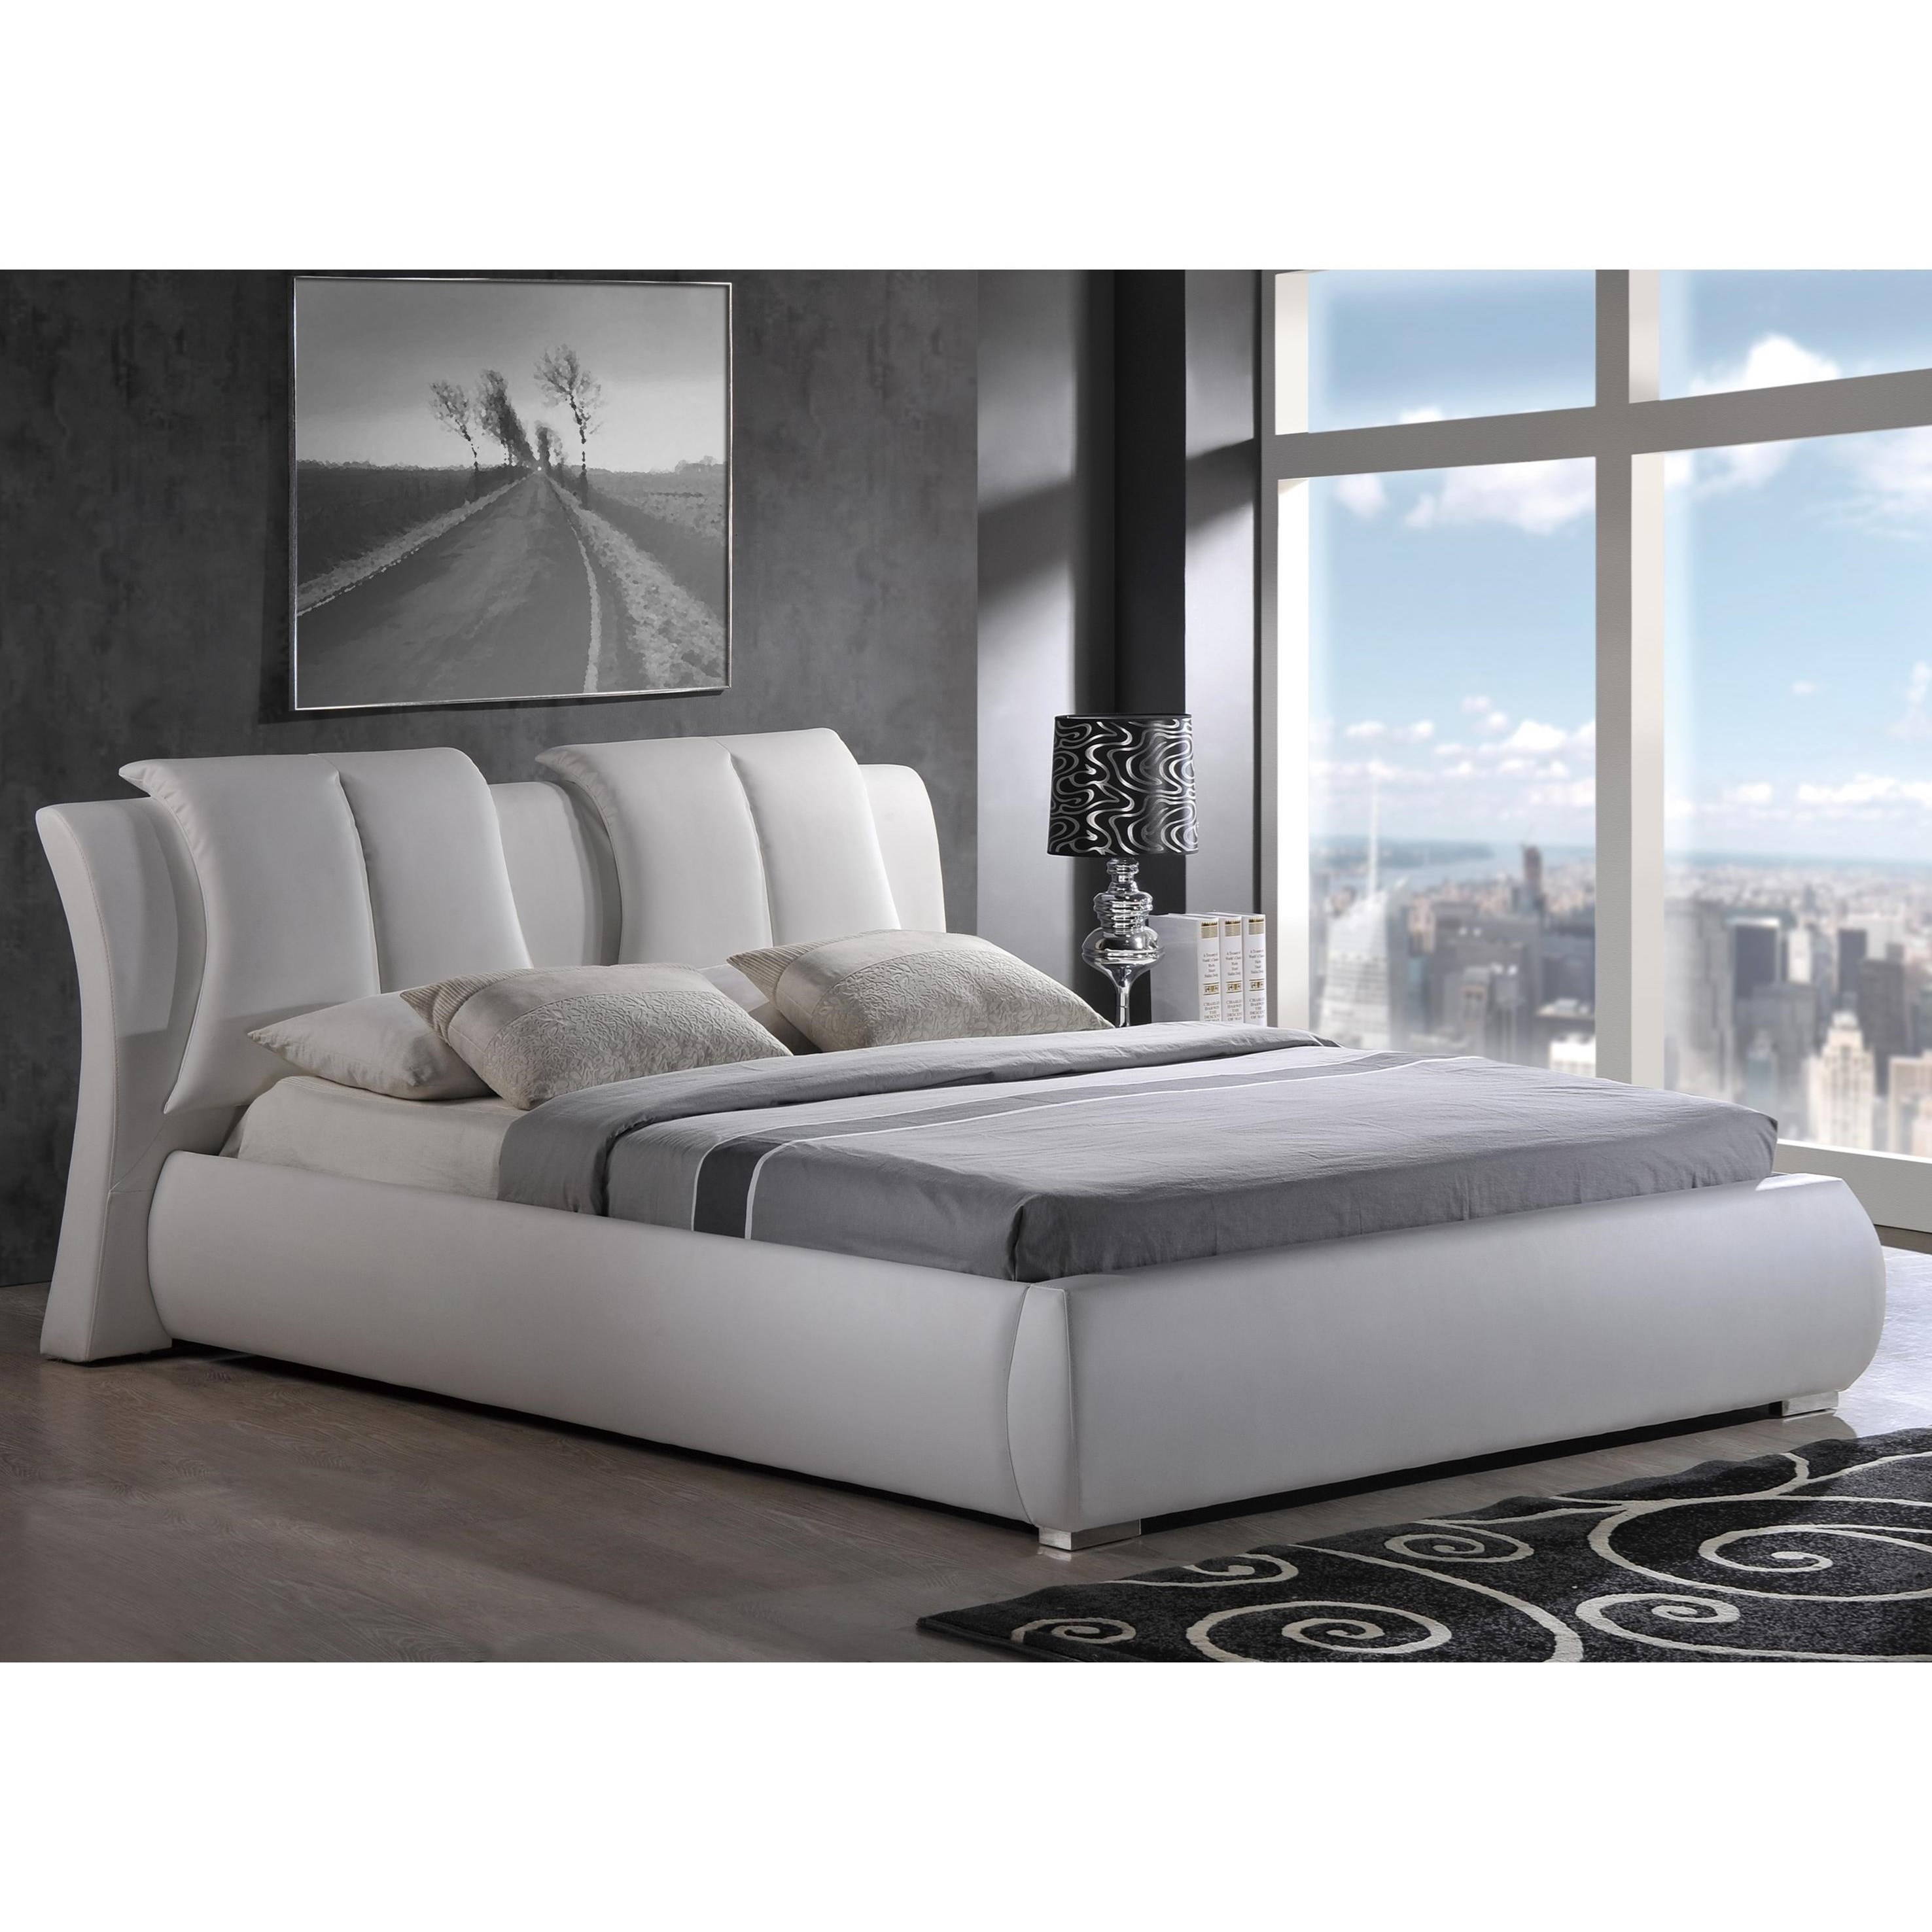 Padded Queen Bed